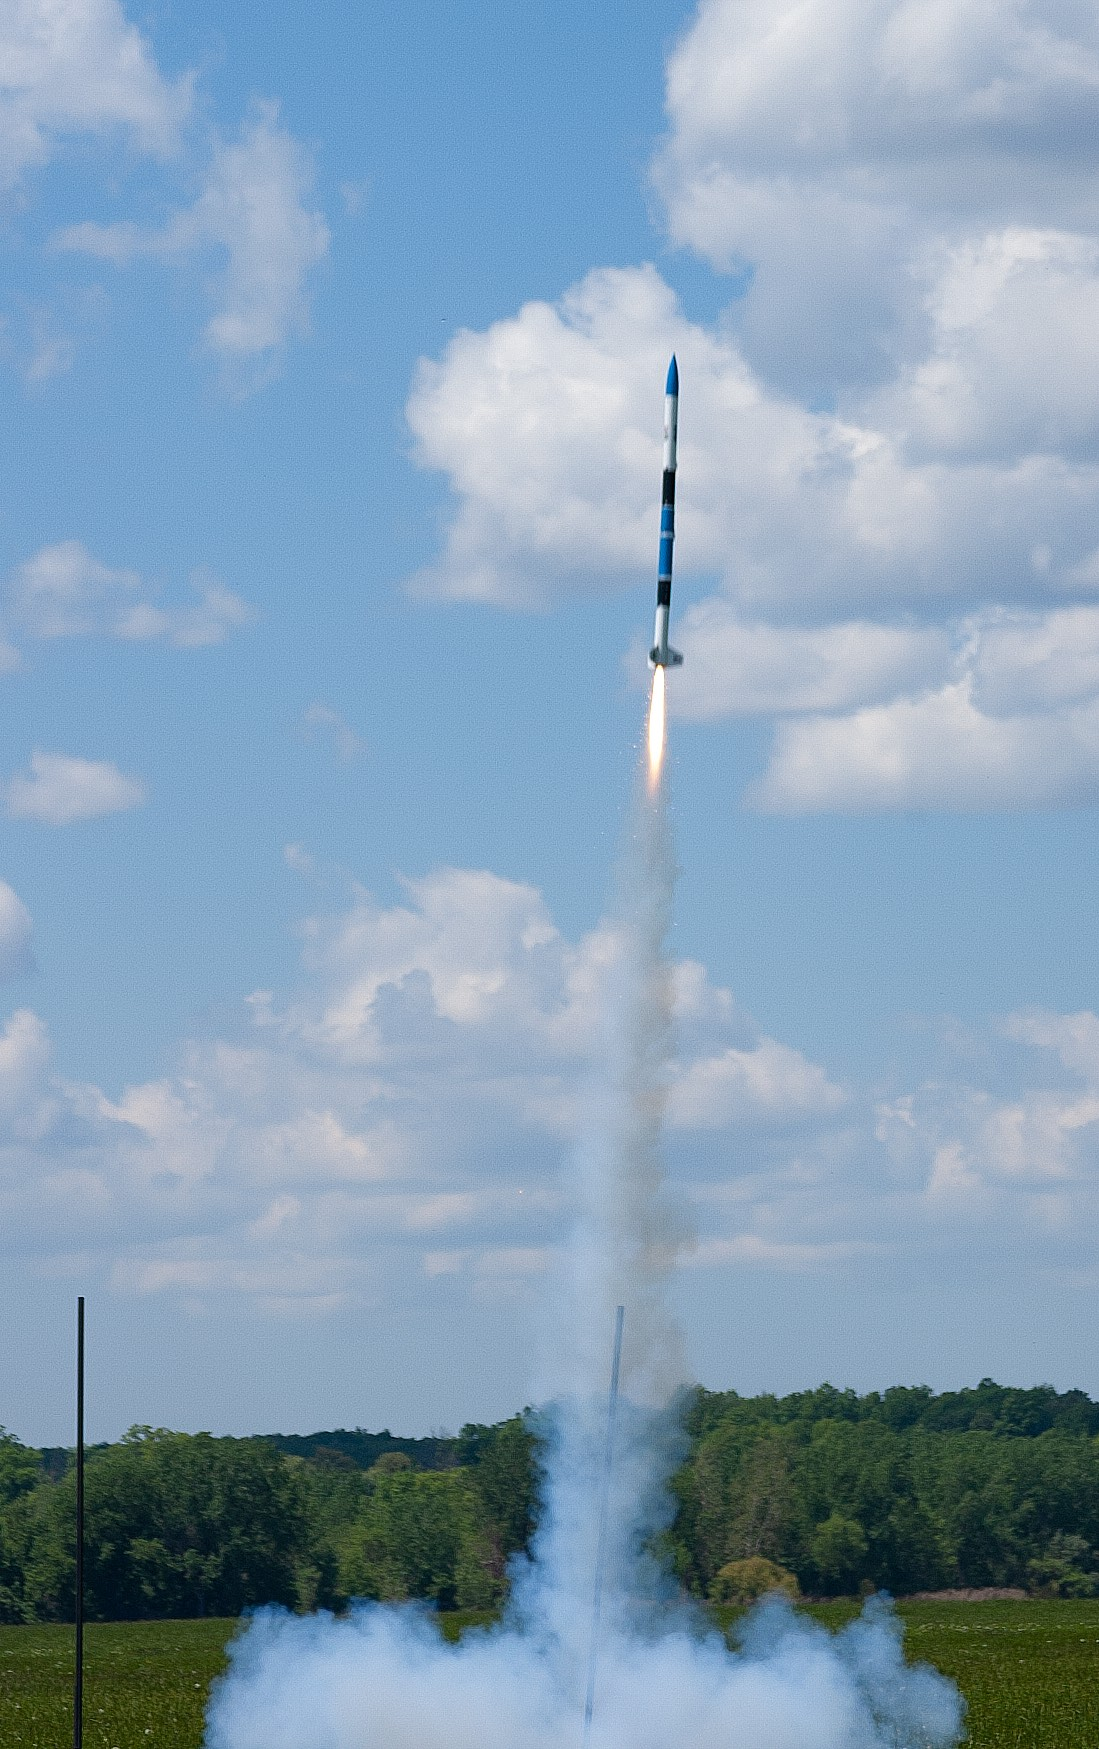 CG's Ares rocket lifting off again after a night of sitting out in the field somewhere during intense thunderstorms.